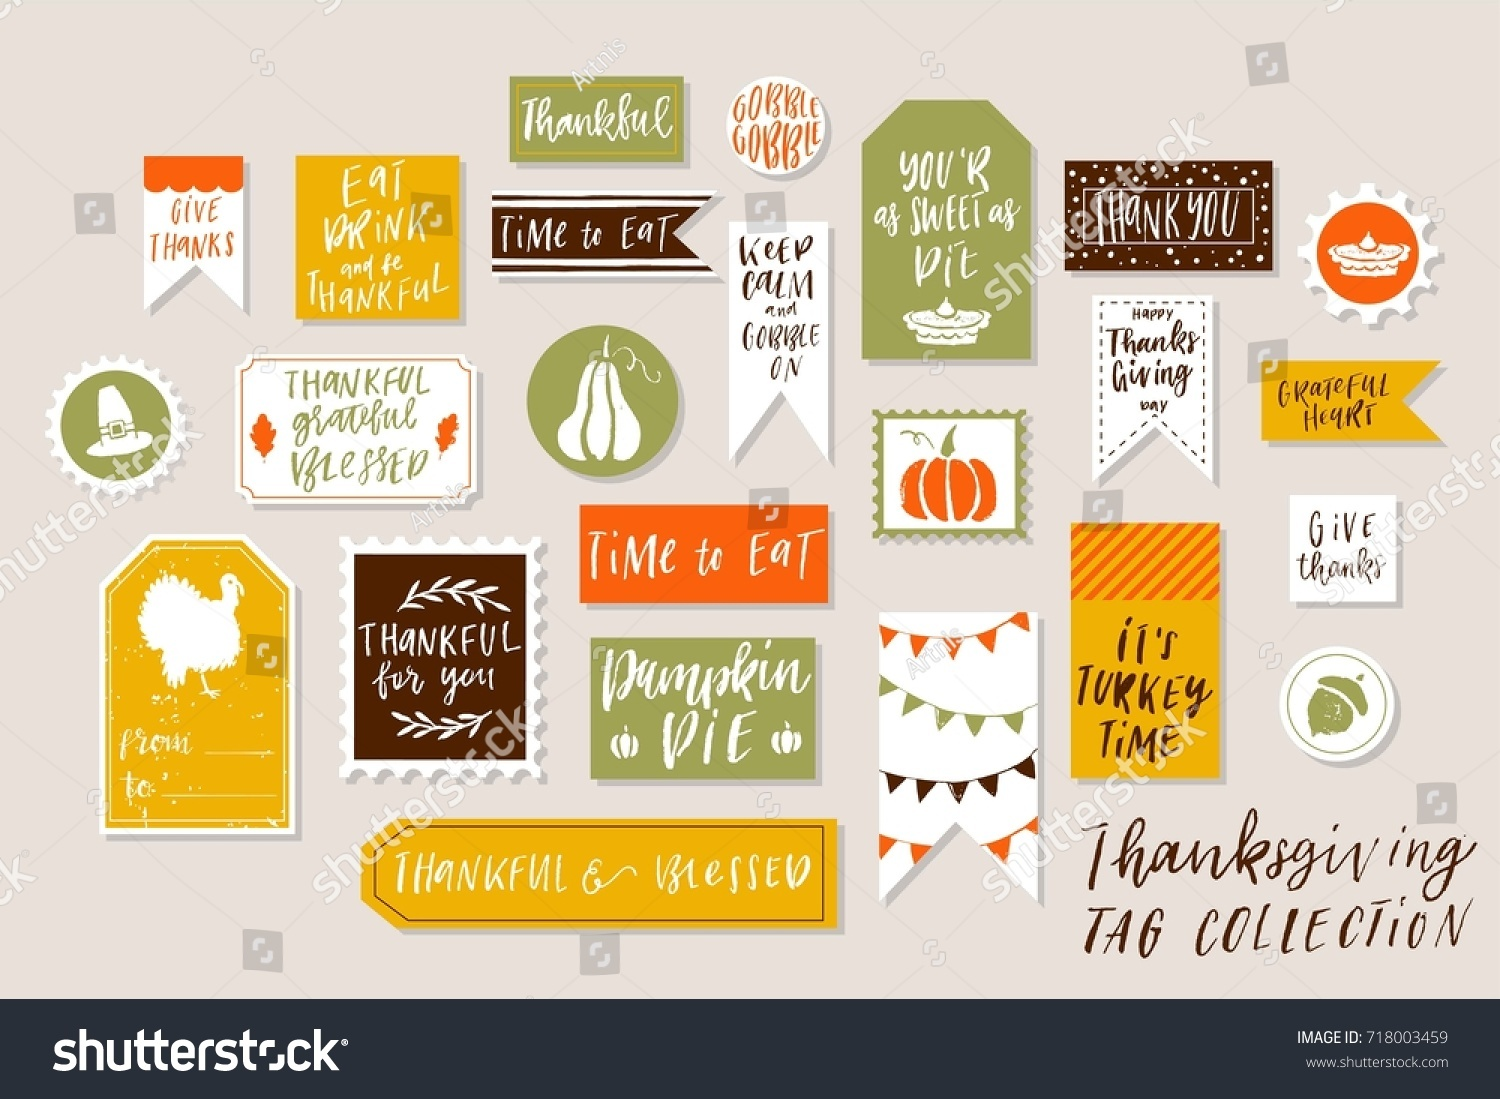 Abstract Bright Textured Colored Thanksgiving Day Stock Vector ...